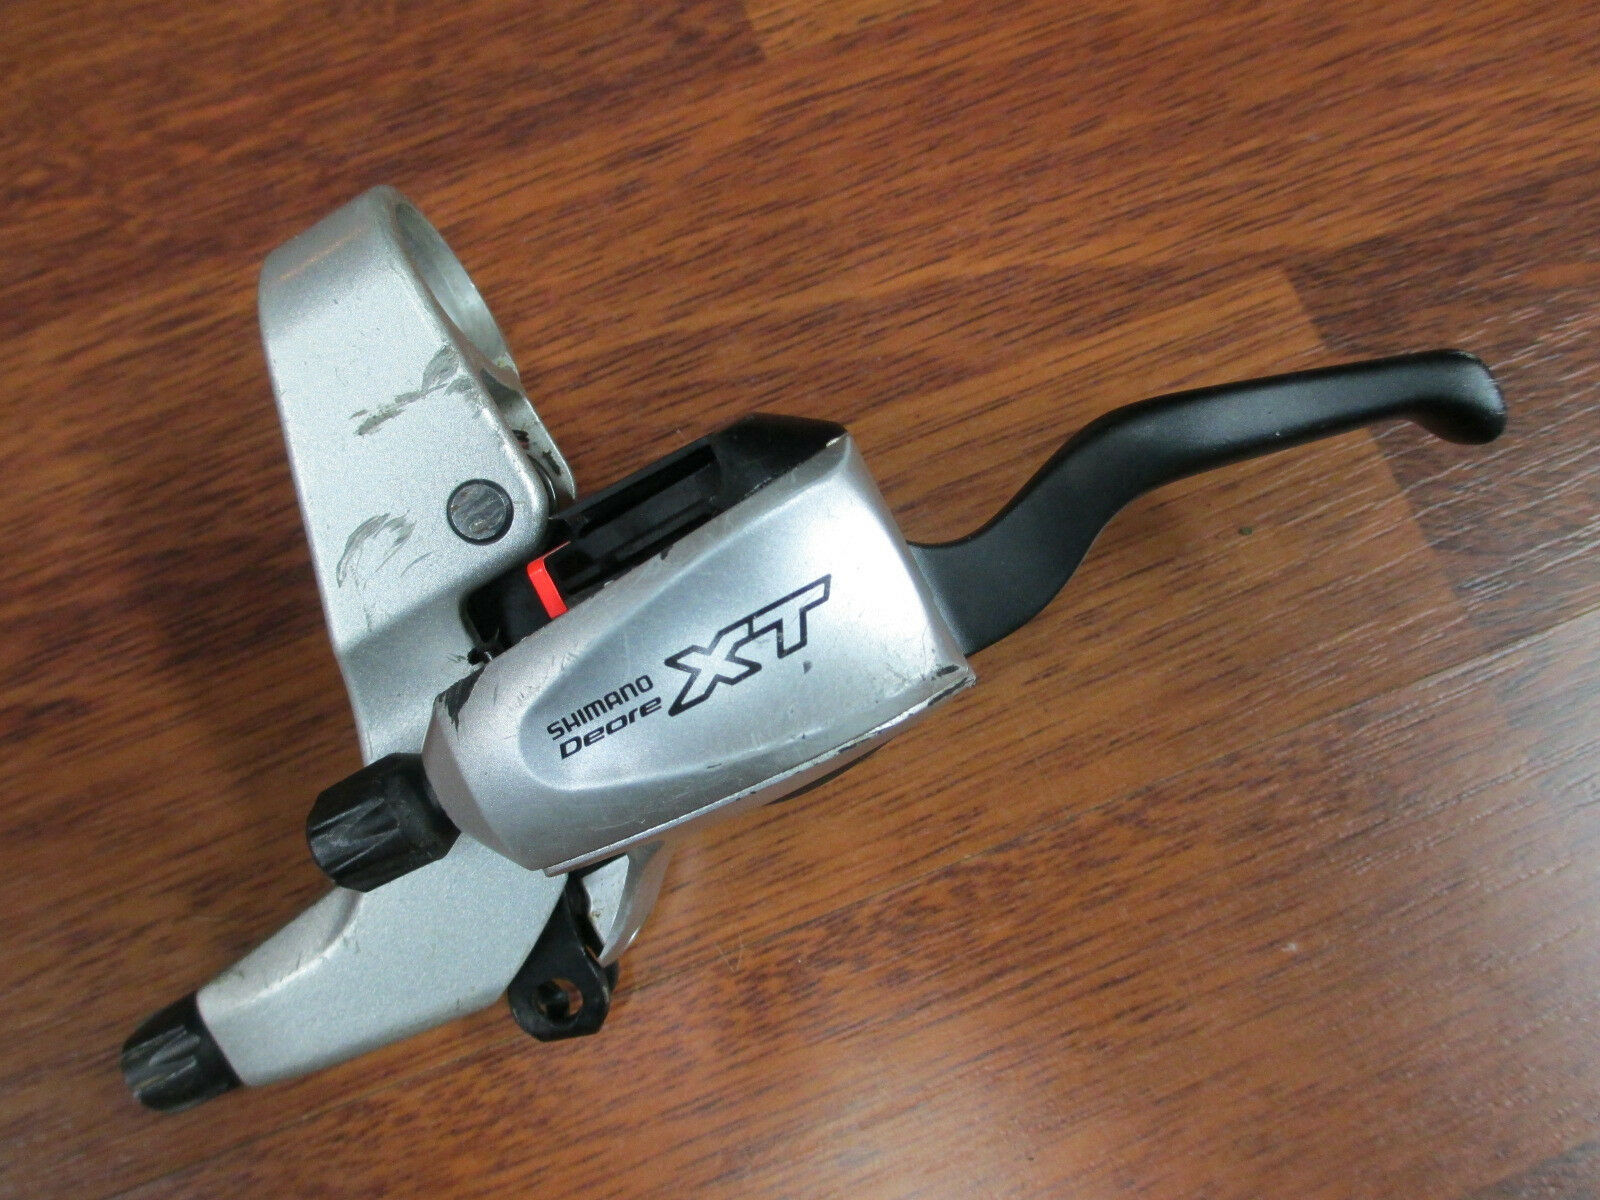 SHIMANO XT ST  M760 LEFT FRONT DOUBLE OR TRIPLE INTEGRATED SHIFTER BRAKE LEVER  discount low price